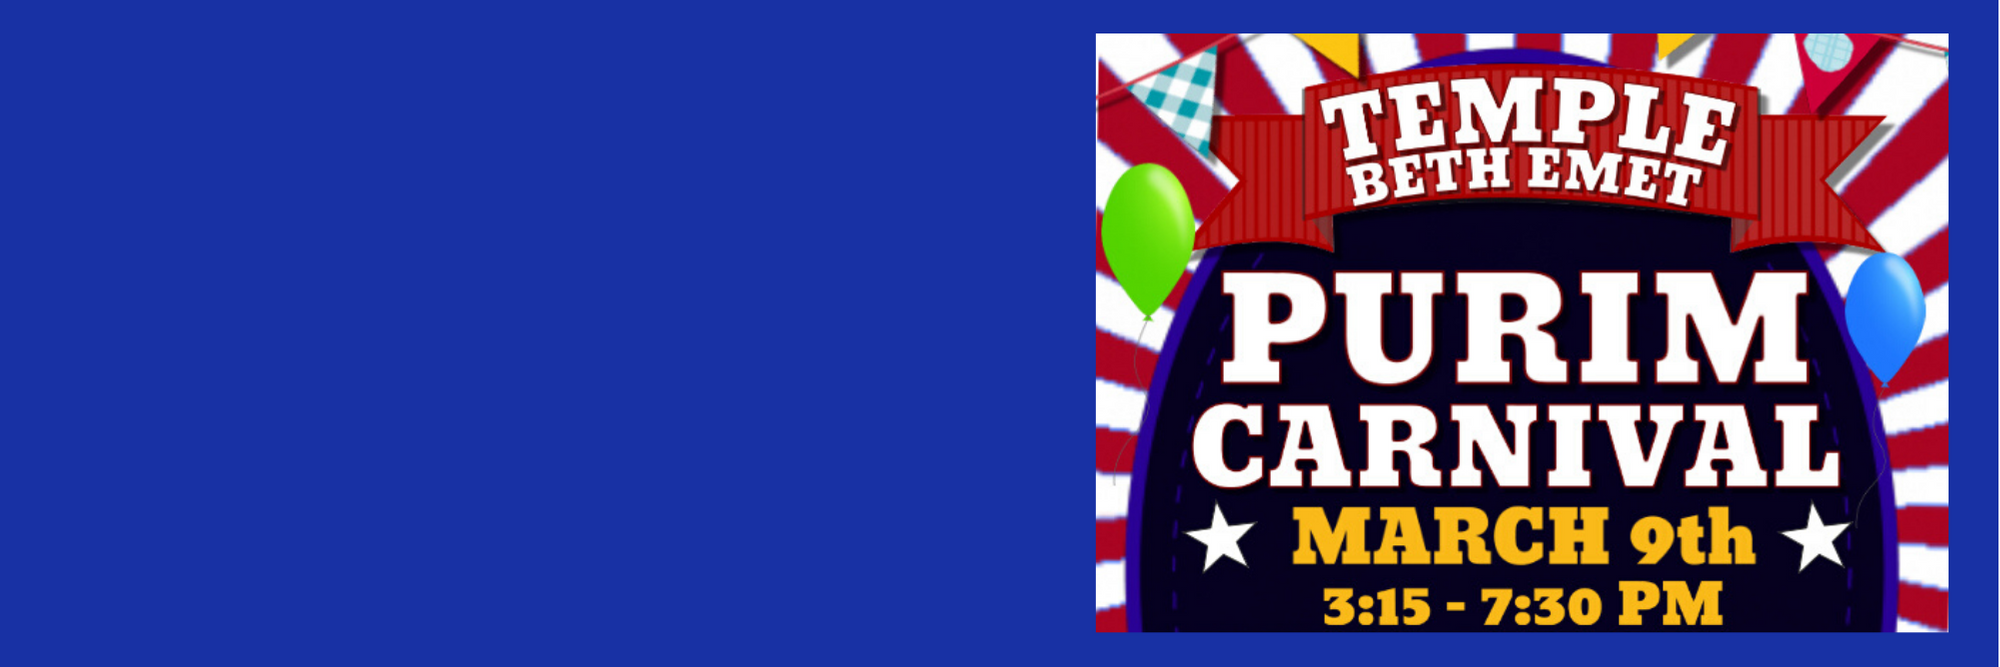 """<a href=""""https://www.templebethemet.org/community/purim-carnival""""                                     target="""""""">                                                                 <span class=""""slider_title"""">                                     Purim Carnival                                </span>                                                                 </a>                                                                                                                                                                                       <span class=""""slider_description"""">Unlimited Rides $10 per person. Join us for our annual Purim Carnival. Costumes, Carnival Slide, Carnival Games & Prizes, Bounce Houses, Train Ride, Pizza*, Popcorn*, Cotton Candy* and more!  *Additional Fees for these items  Venmo @Beth-Emet</span>                                                                                     <a href=""""https://www.templebethemet.org/community/purim-carnival"""" class=""""slider_link""""                             target="""""""">                             More Details                            </a>"""